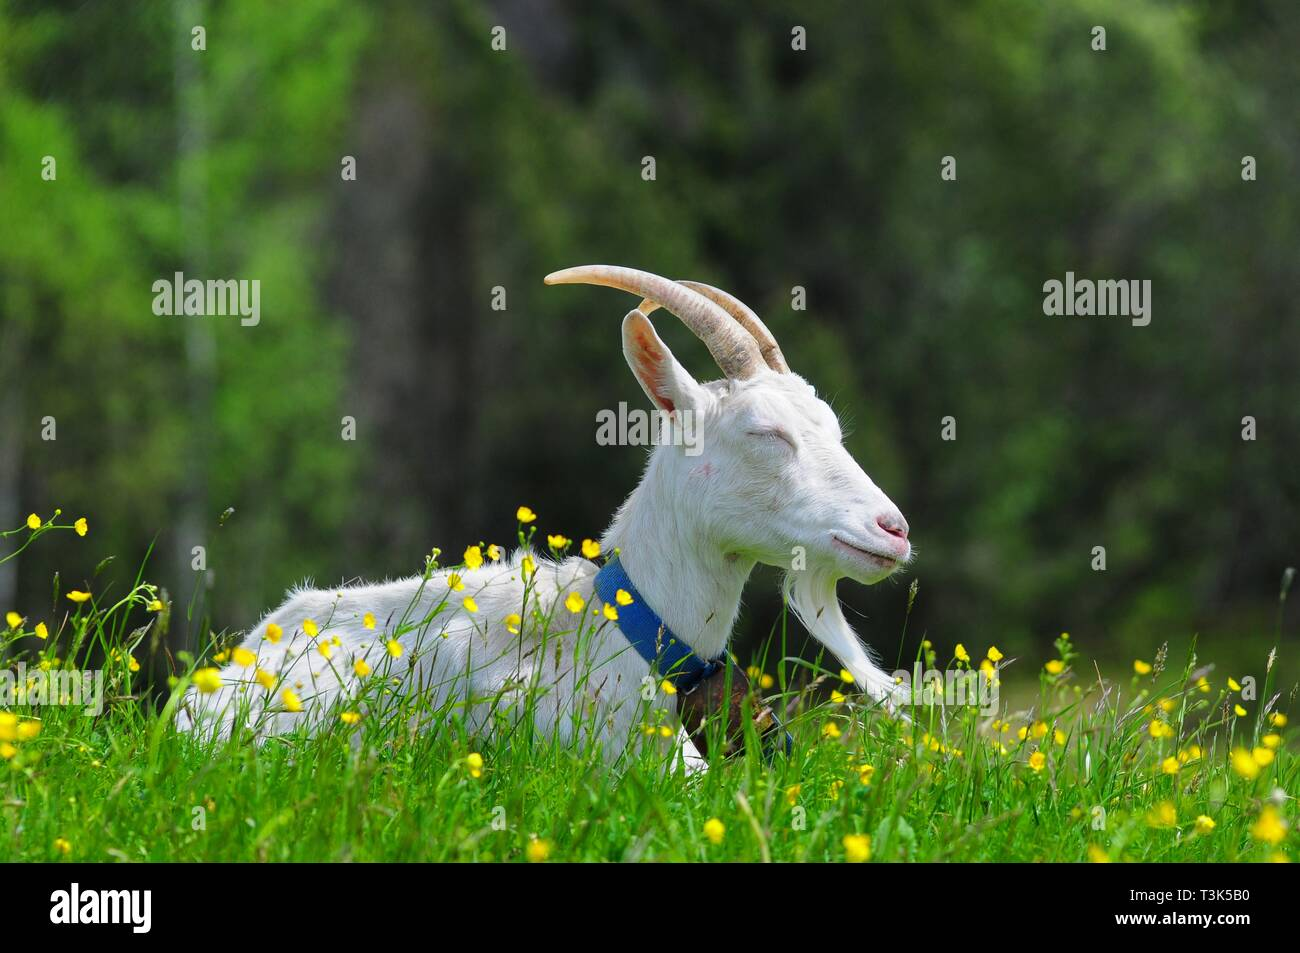 Goat (Capra) on a pasture, Oberbayern, Bavaria, Germany, Europe - Stock Image